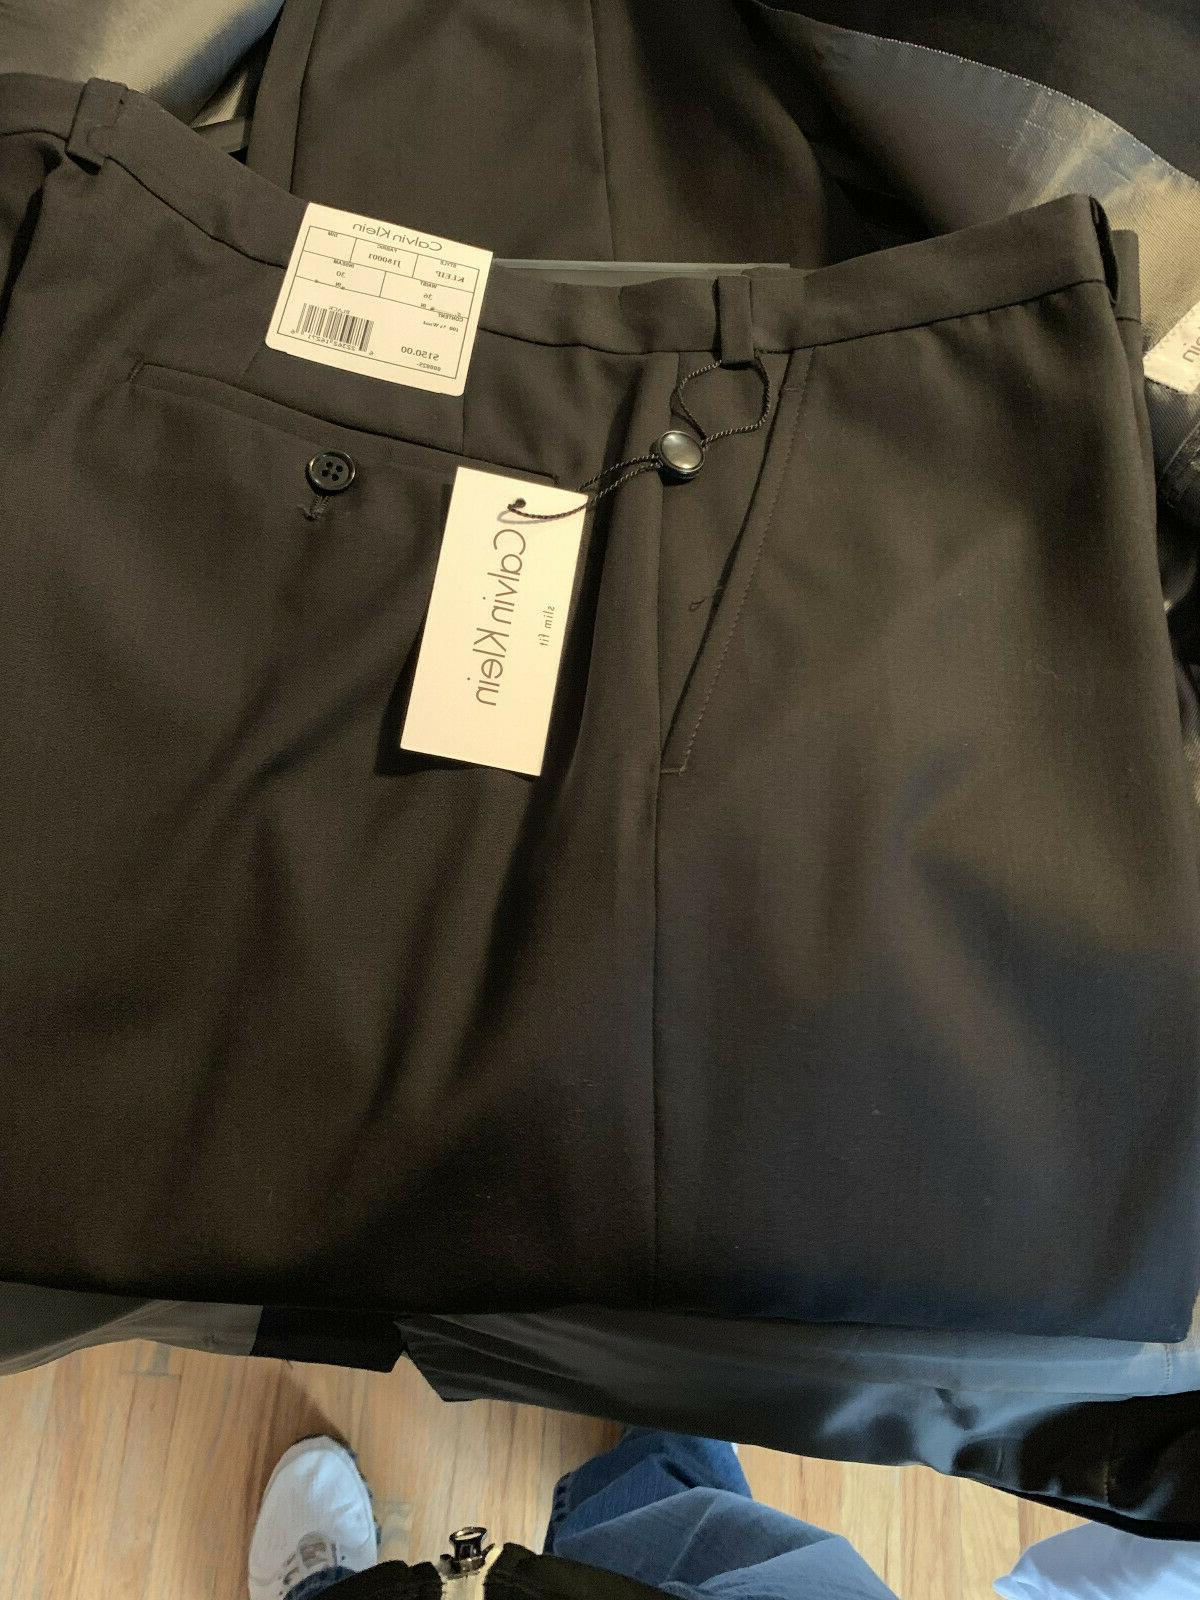 Calvin Klein NWT black slim-fit suit 36x30 Retail